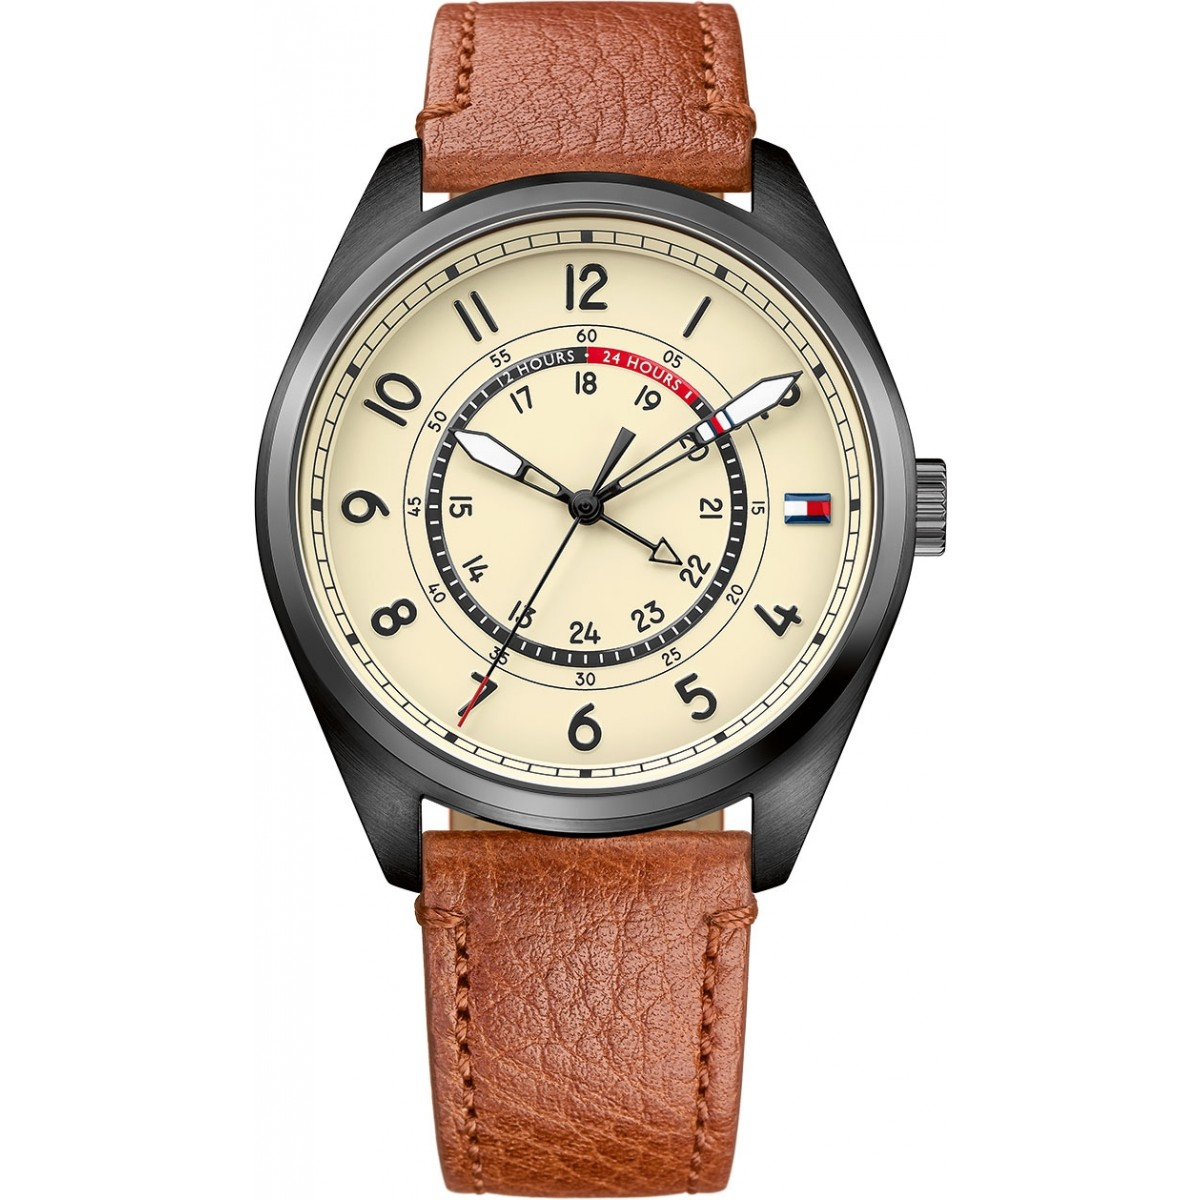 Tommy Hilfiger Herre ur - Model 1791372